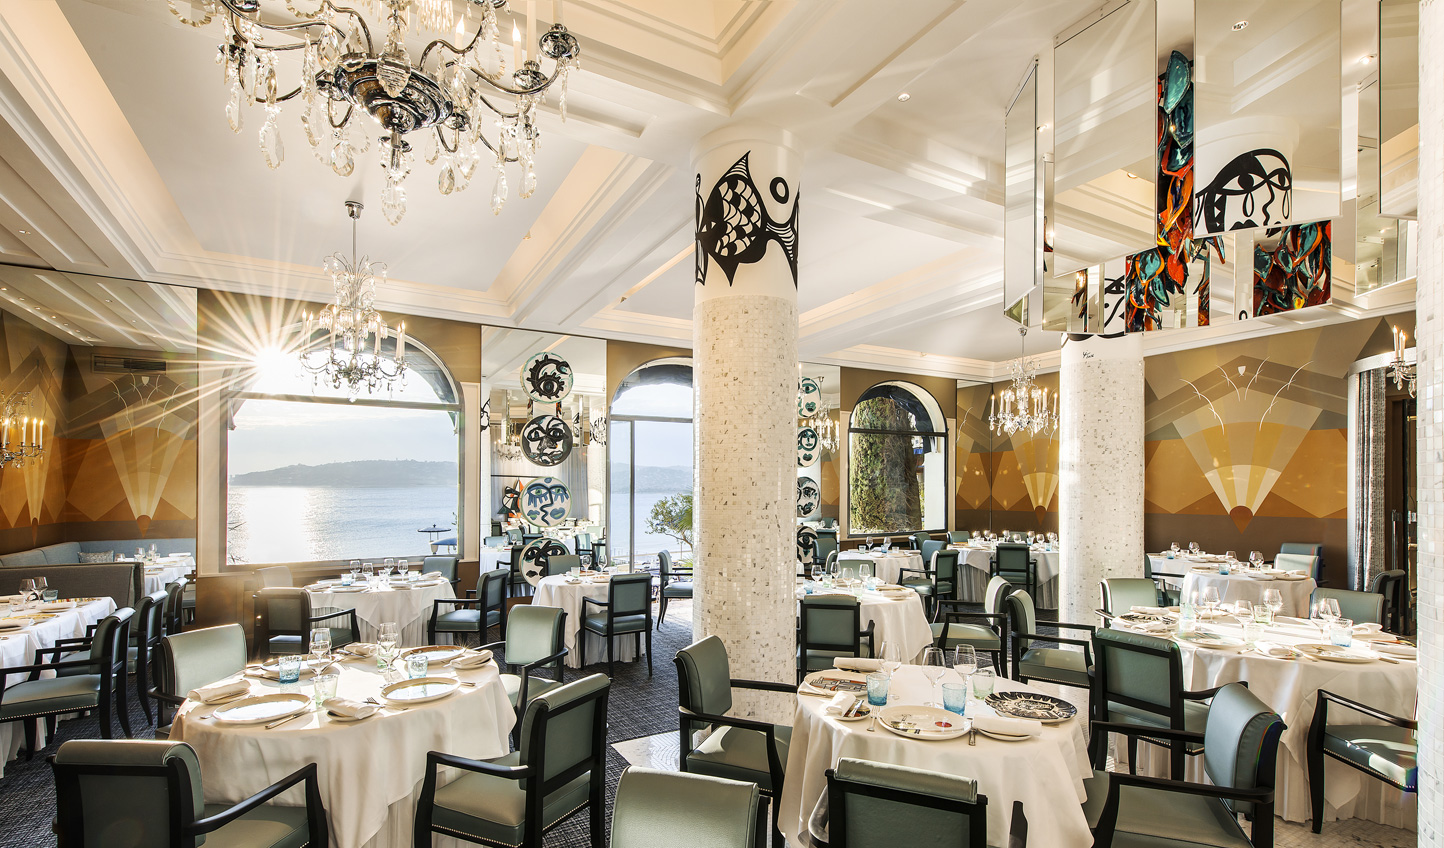 Dine on Michelin-starred cuisine over dreamy views